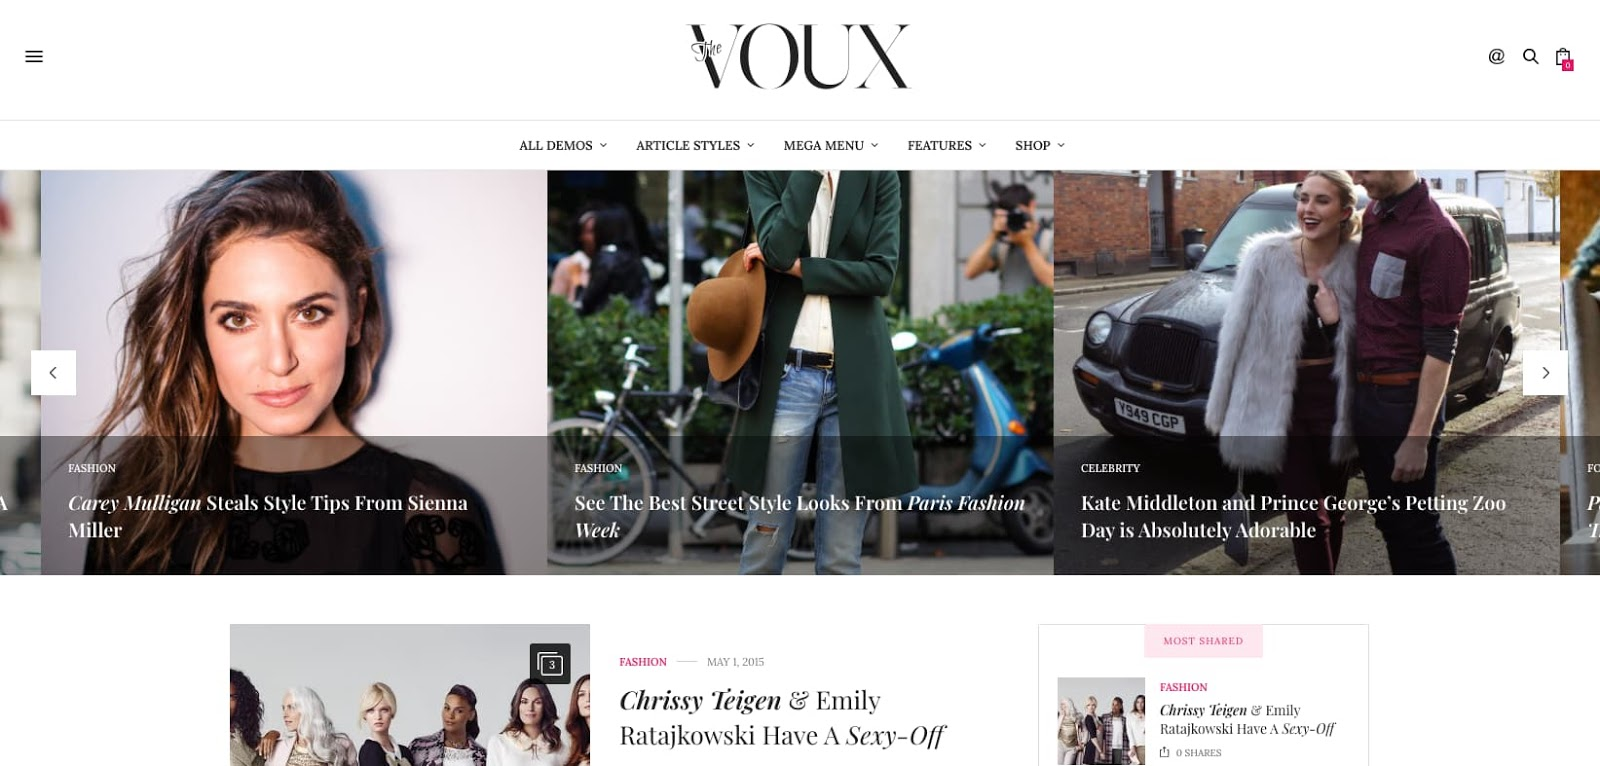 demo of the wordpress theme for adsense the voux